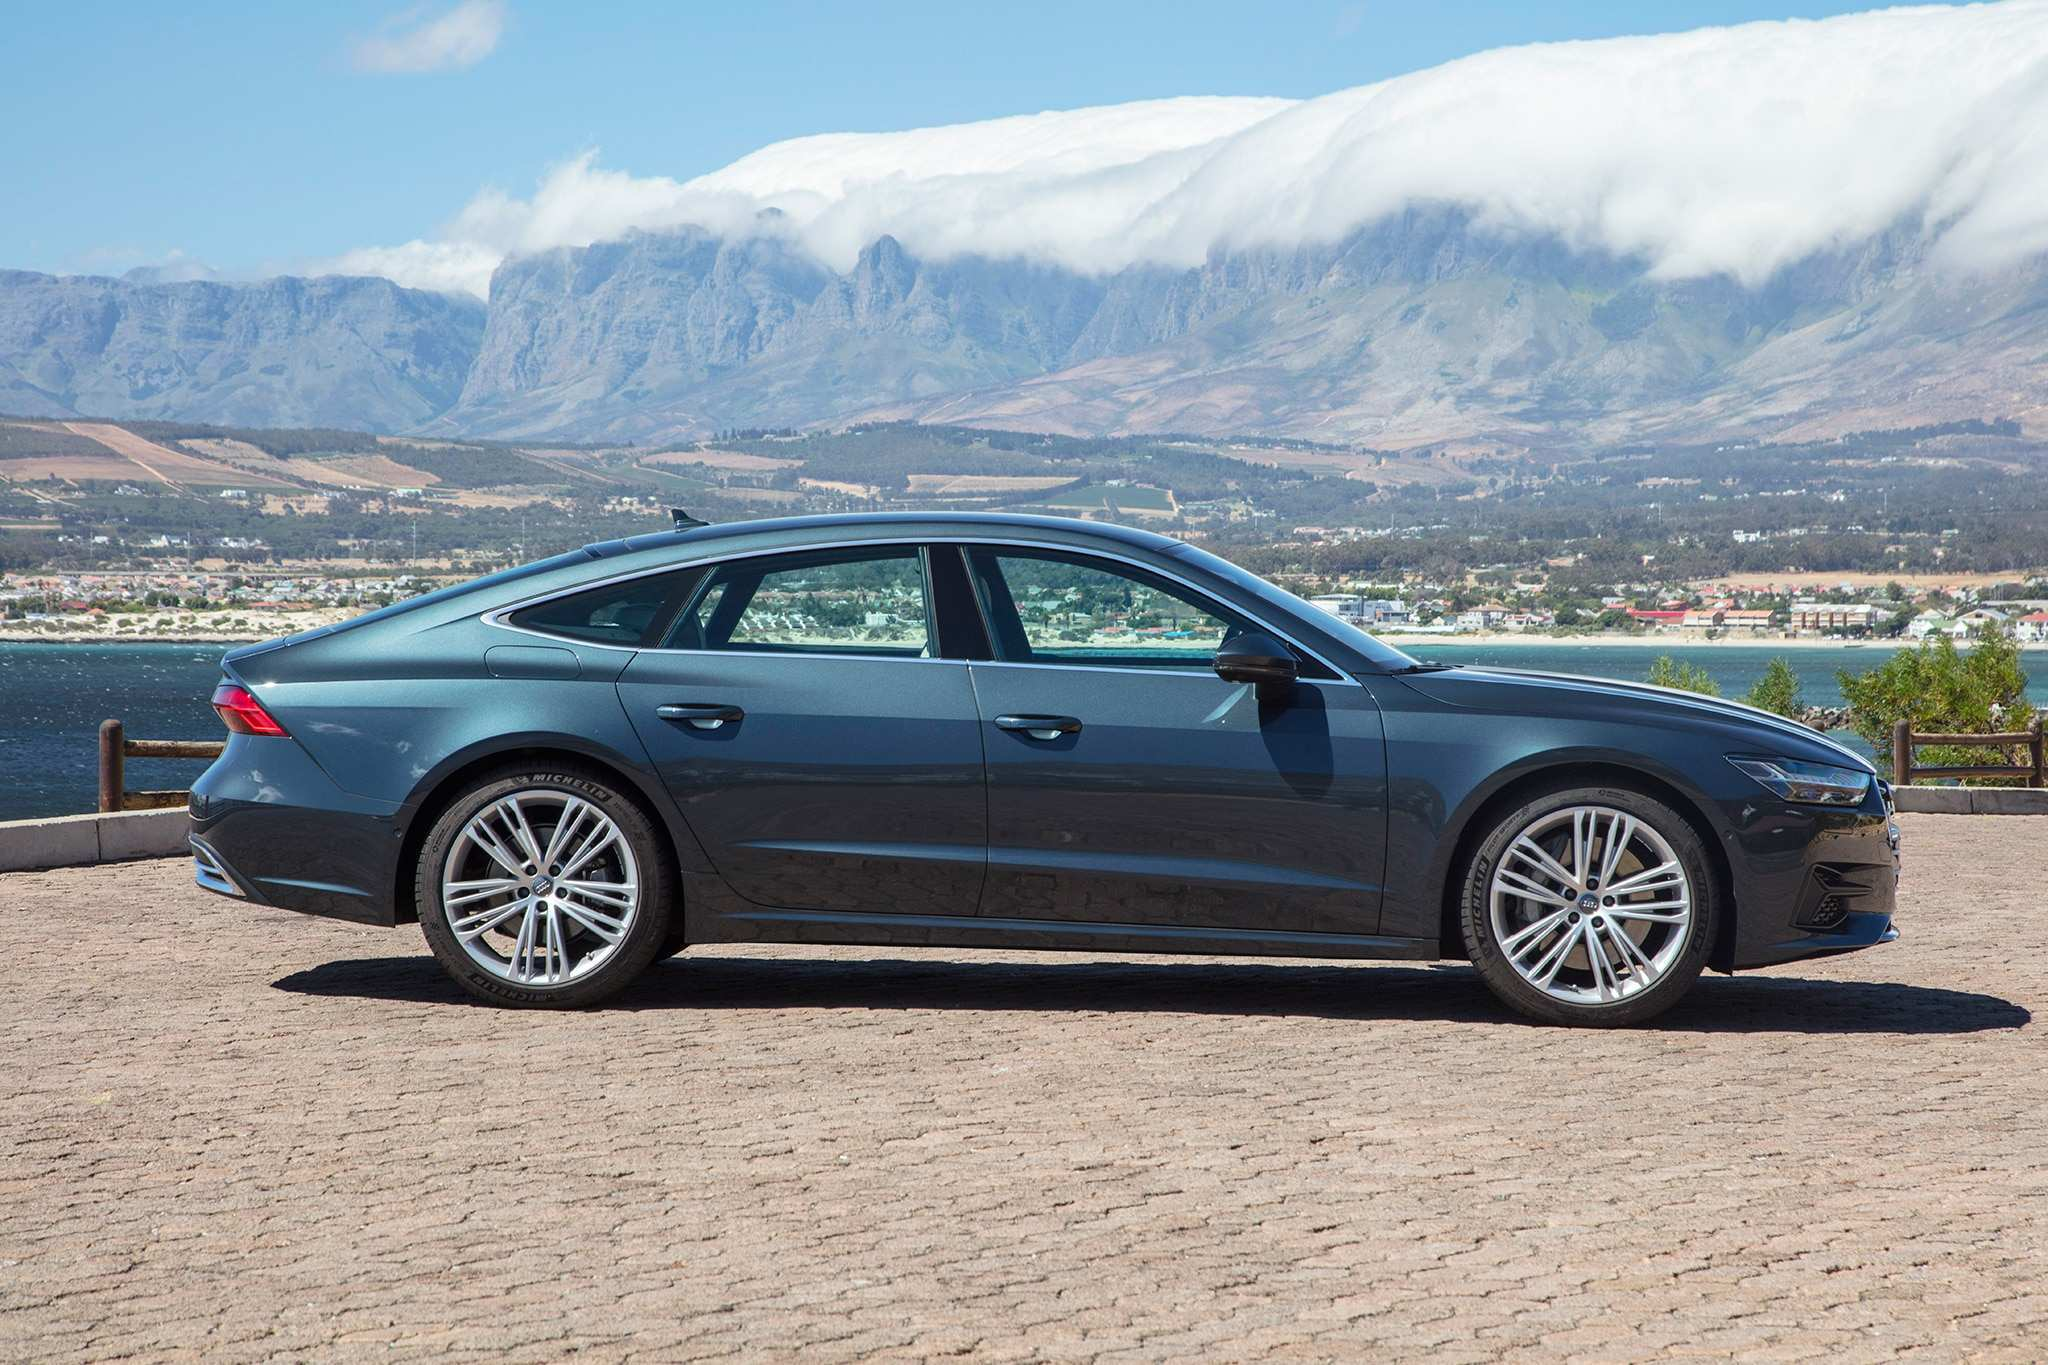 92 Best Review 2019 Audi A7 Msrp Release for 2019 Audi A7 Msrp